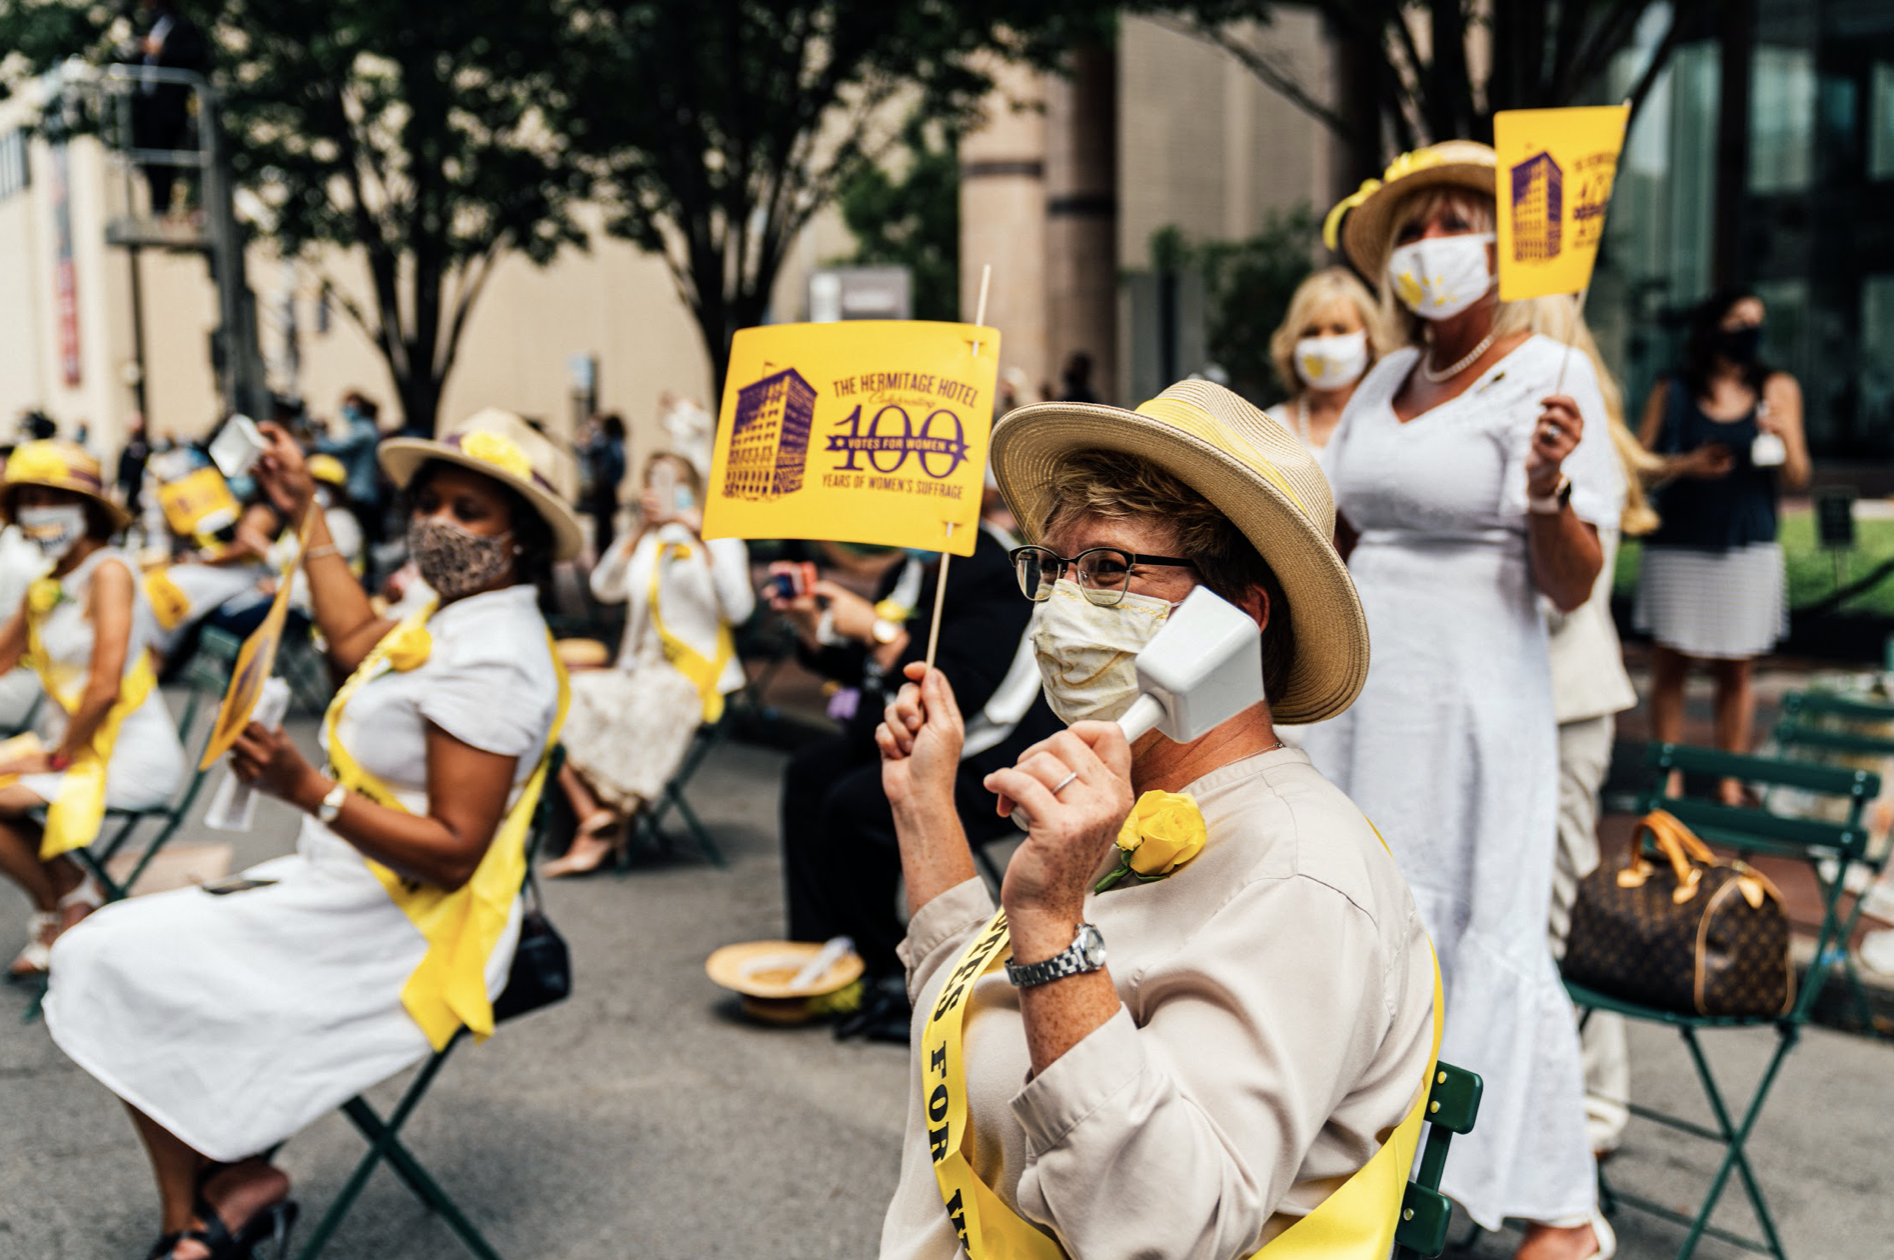 Nashville, Tenn., Aug. 18 - A group of women voters ring bells to celebrate the 100th anniversary of women gaining the right to vote. (Photo: Alex Kent)